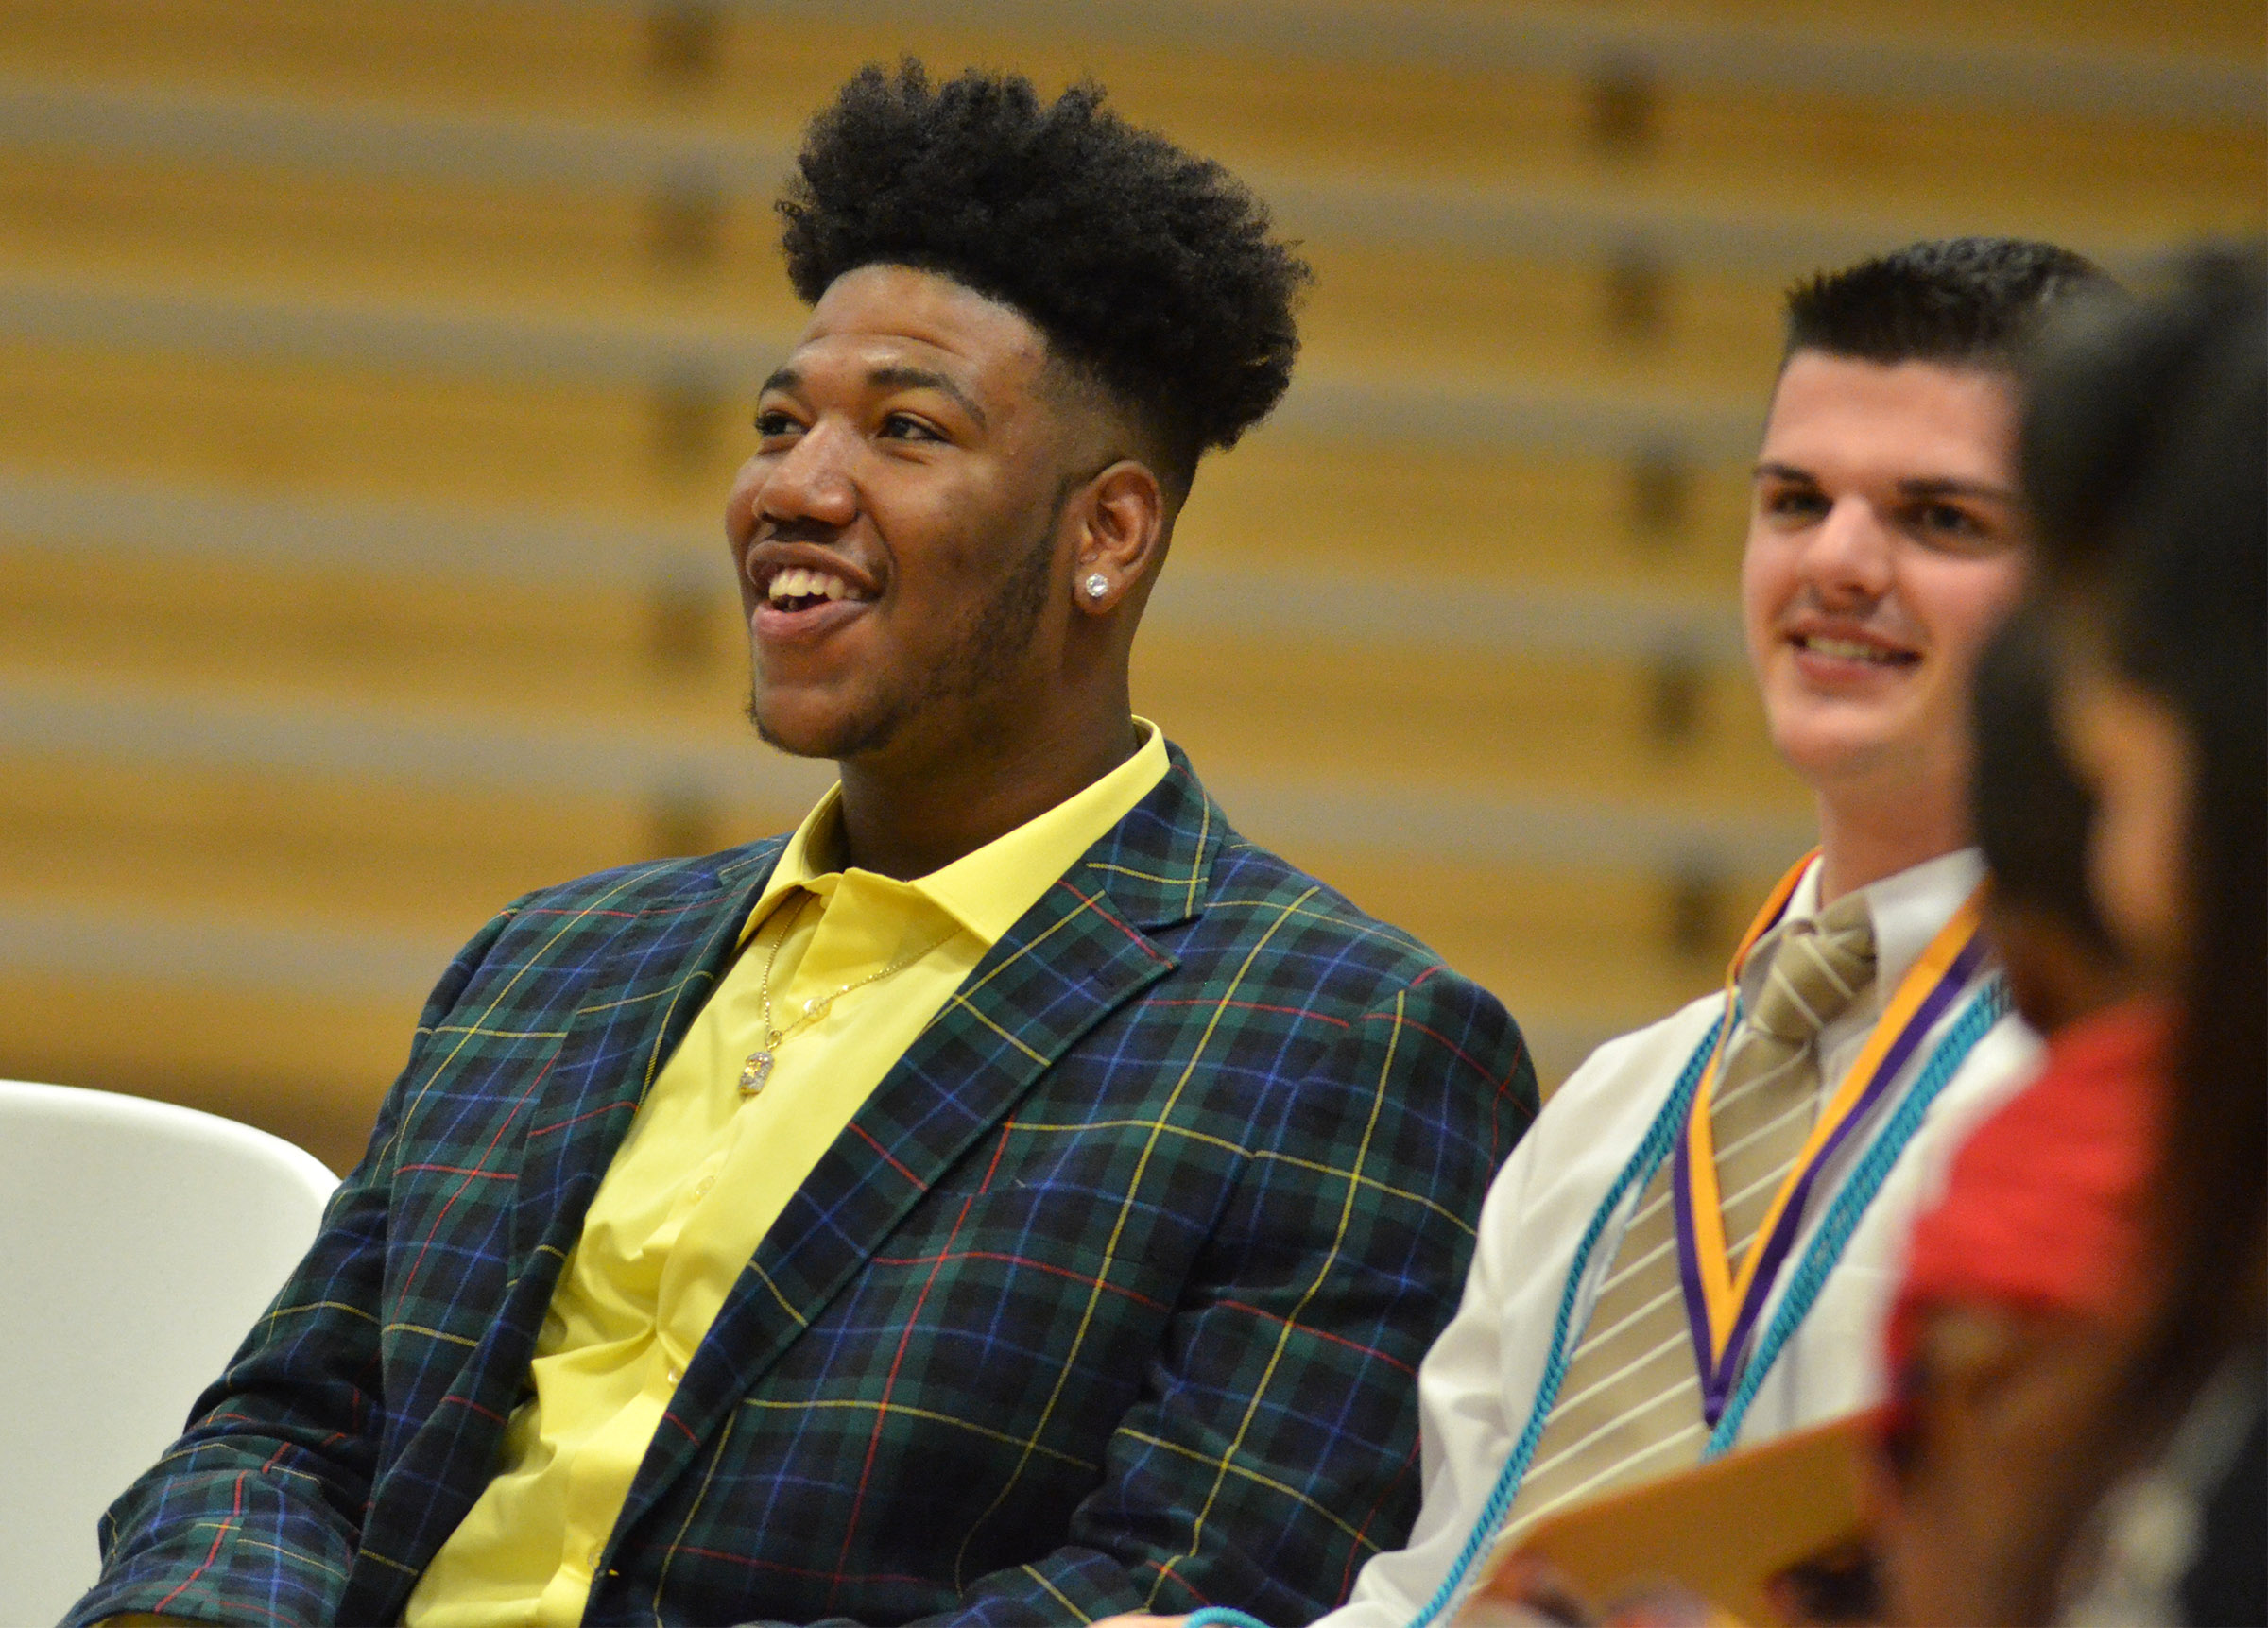 Micah Corley laughs as he and his classmates listen to their class history.